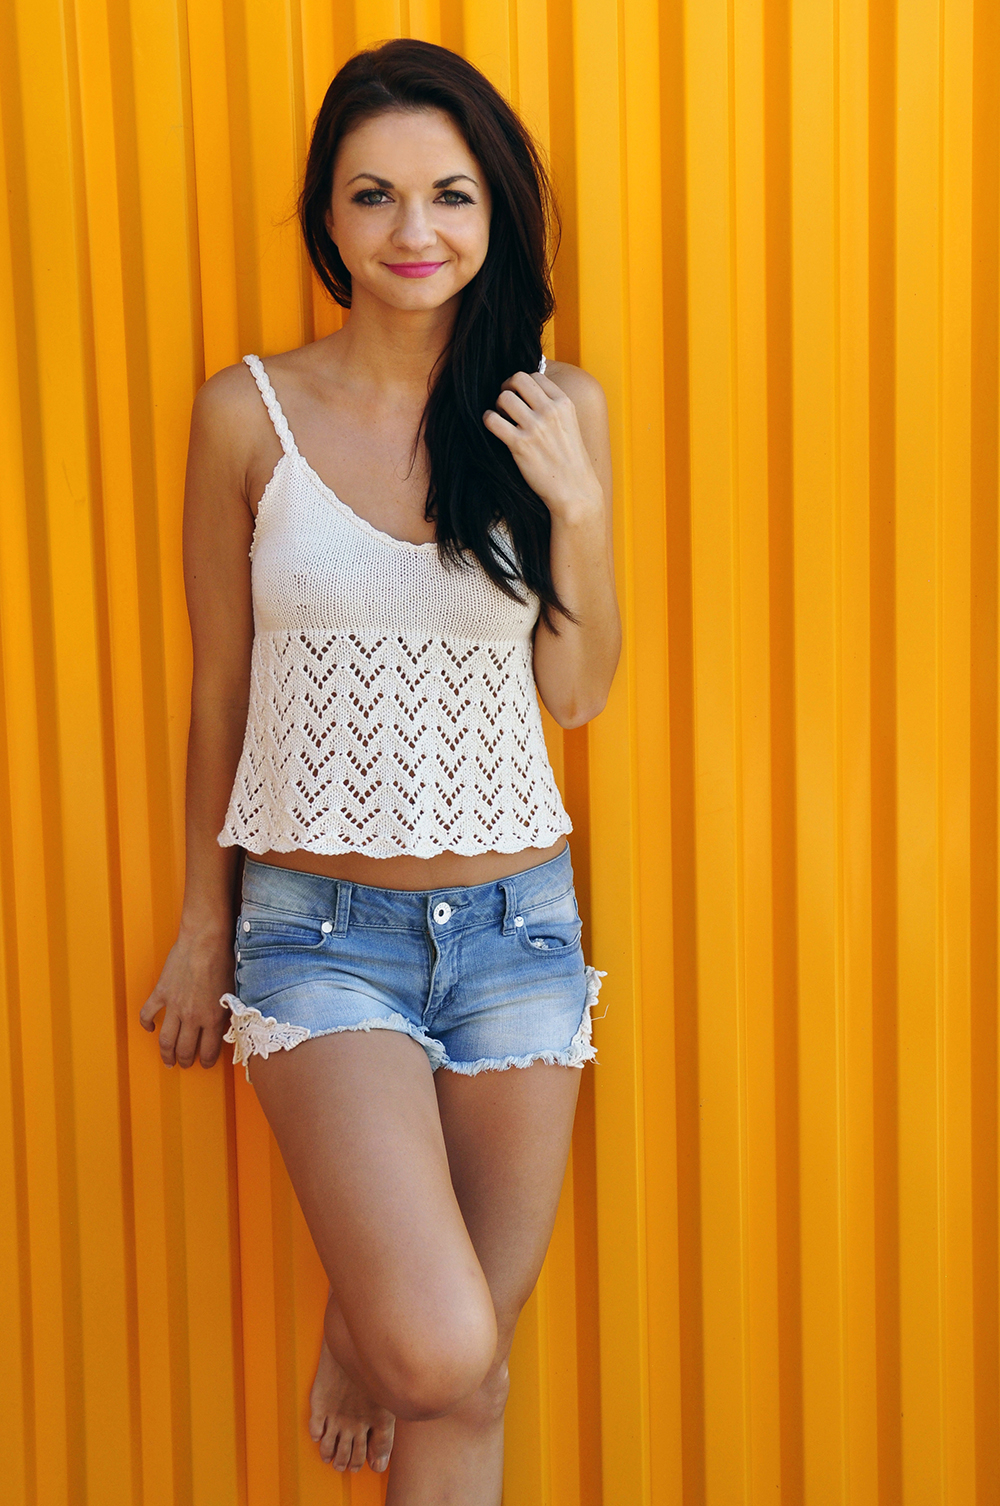 Knitted Tank Top Patterns Bow Crazy Chevron Lace Knitted Tank Top With Open Back And Bow